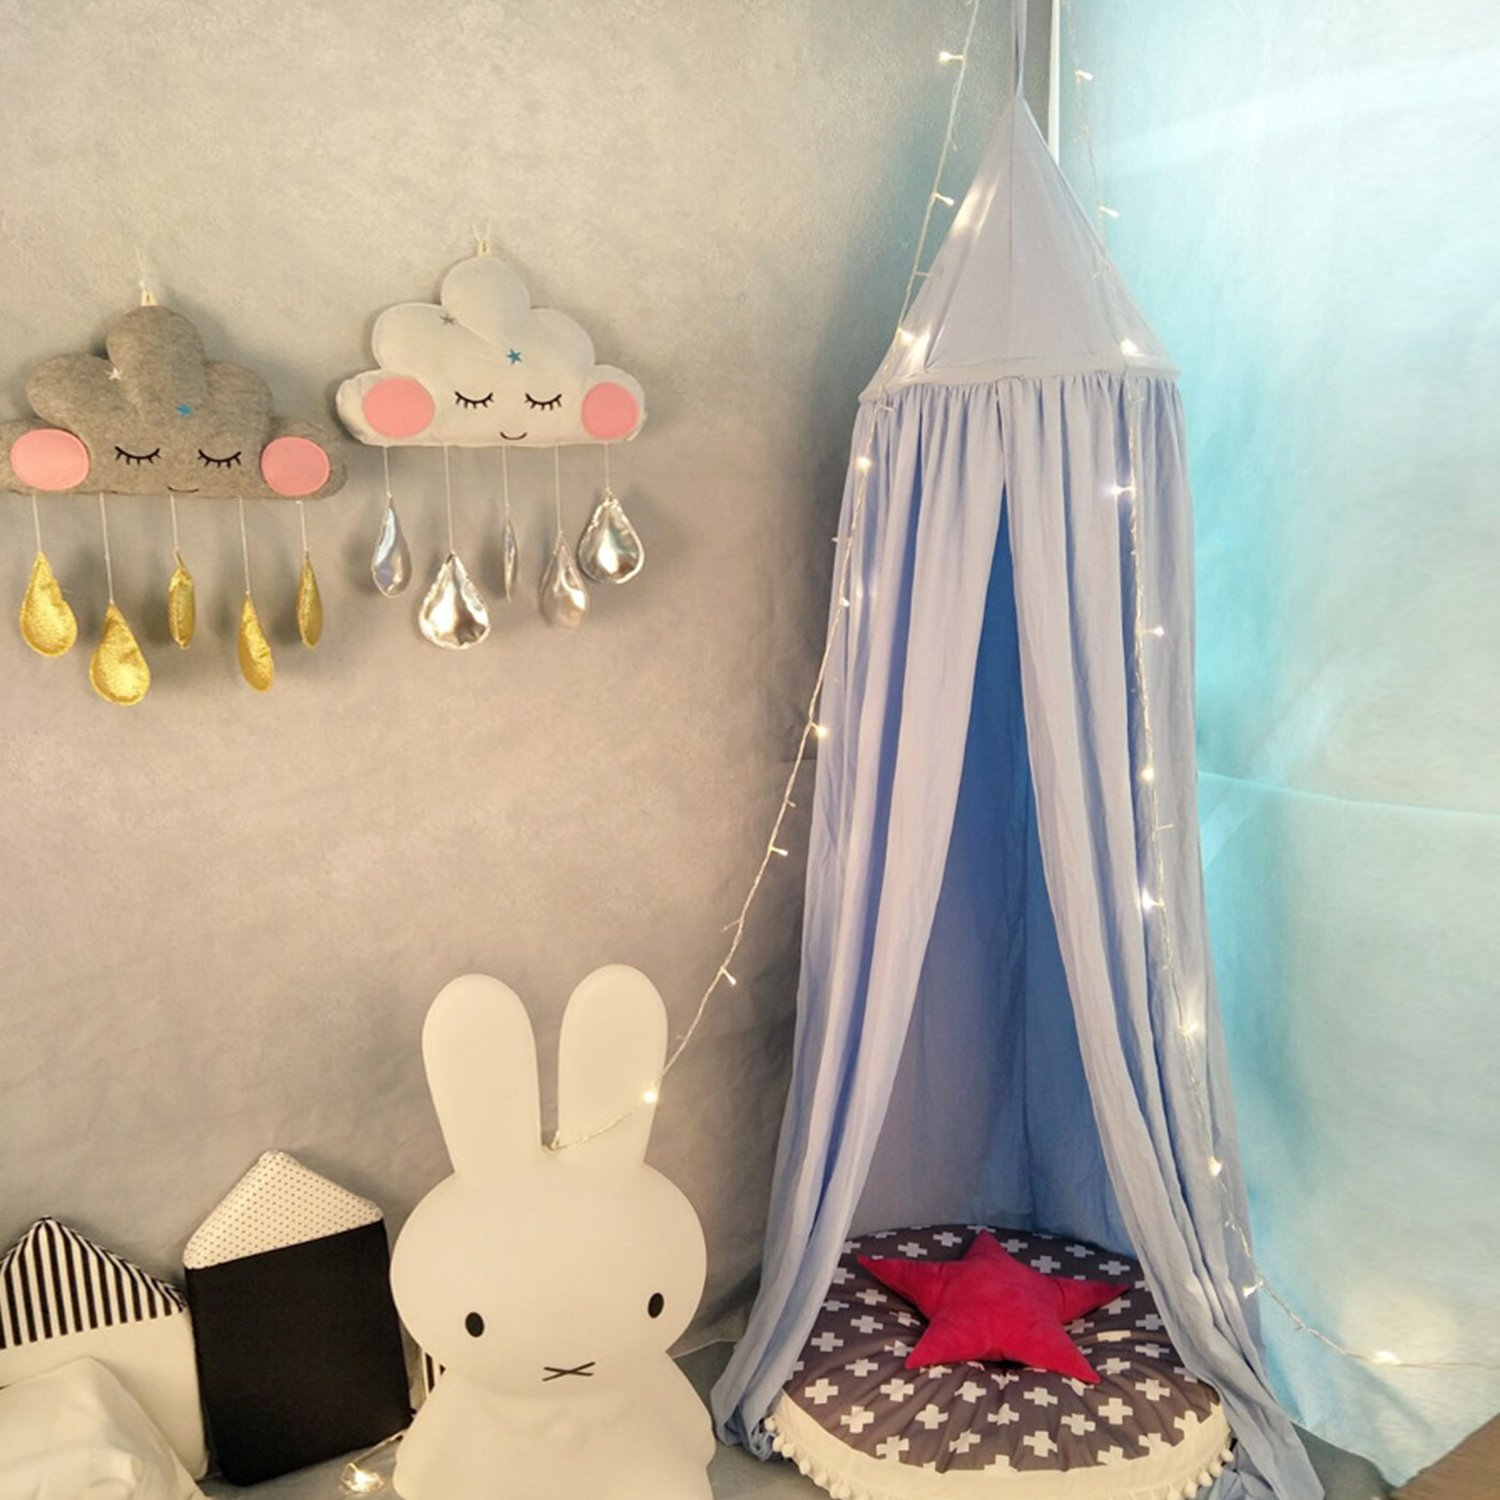 Yimii Round Dome Bed Canopy Mosquito Net, Block out Light Cotton Bed Curtains for Kids Baby Boy and Girls Grey